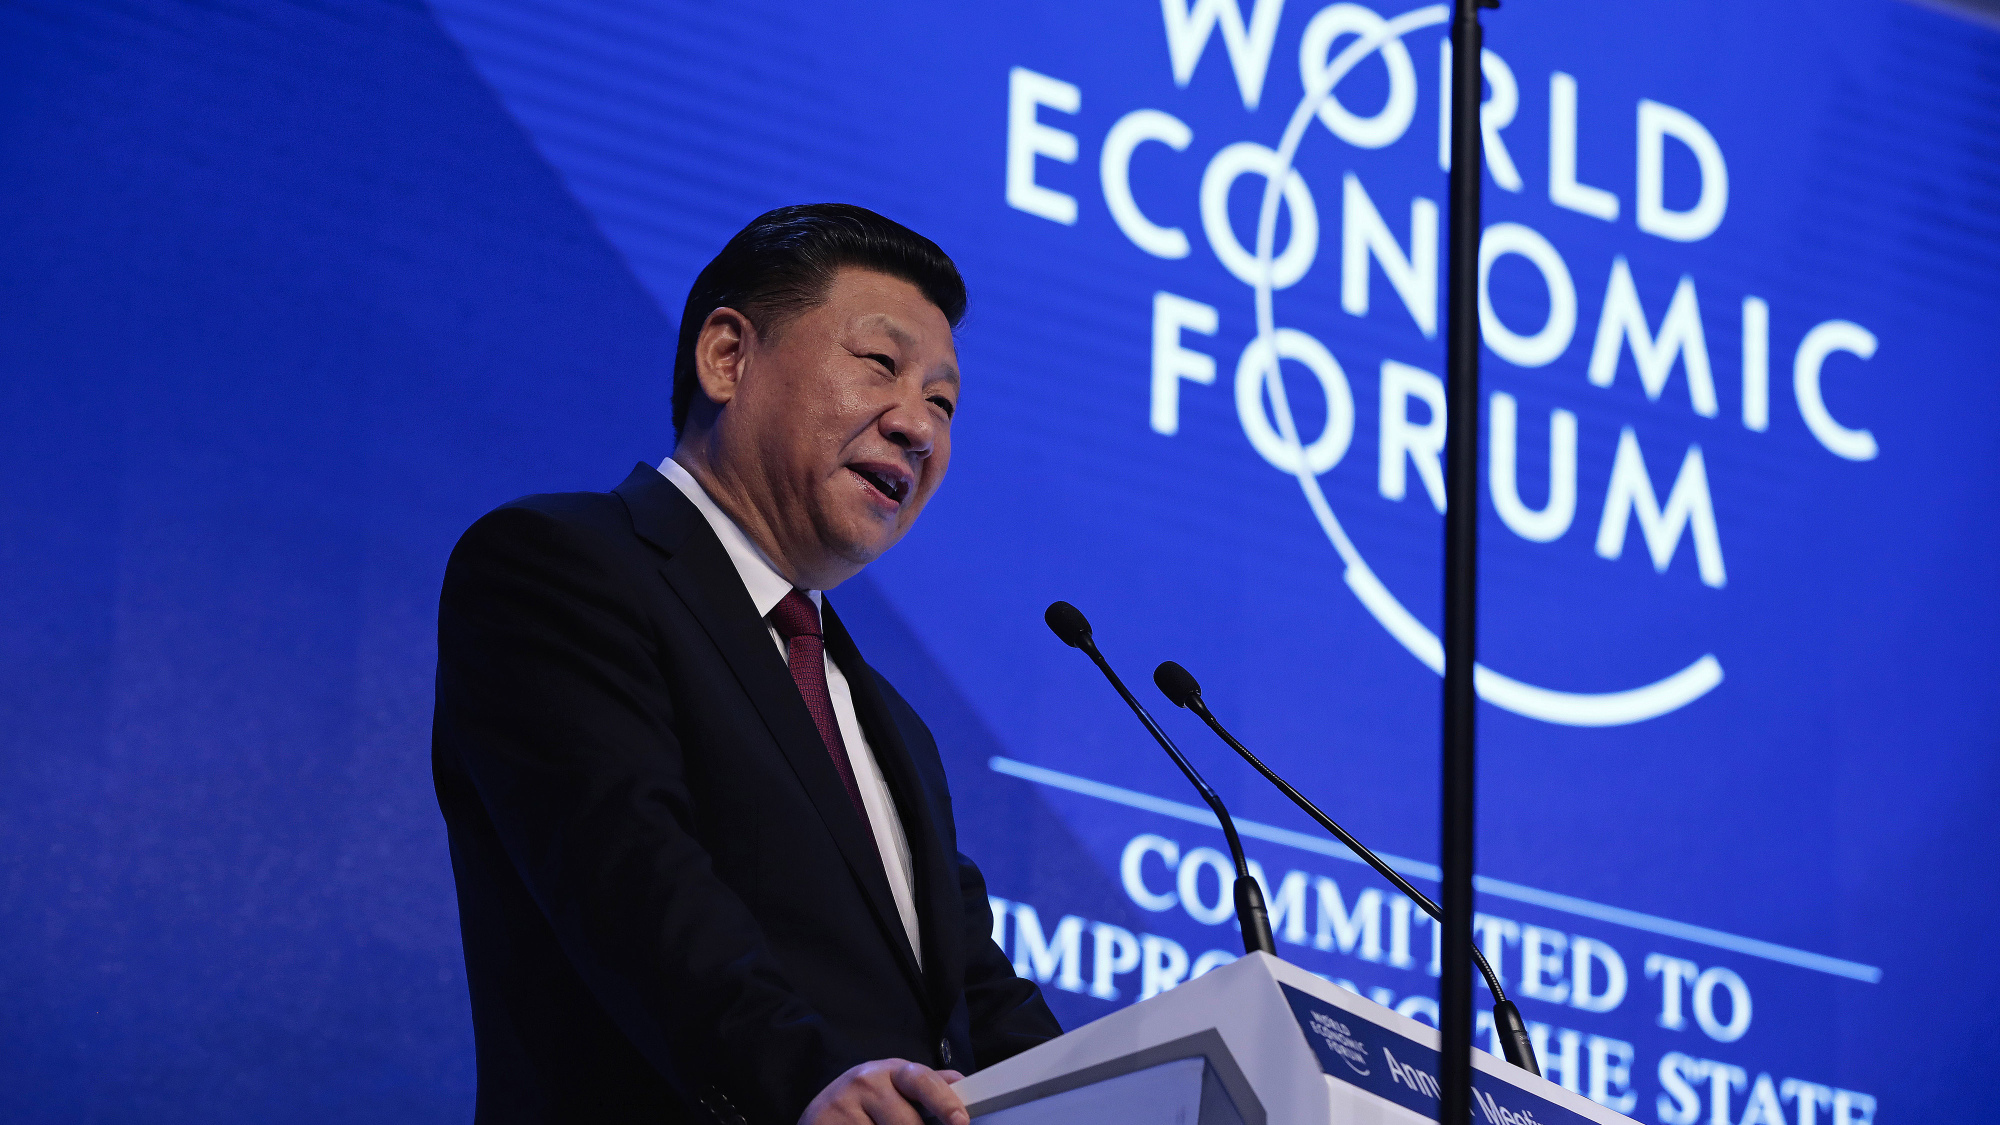 China's media use fake quotes to embellish Xi's global influence